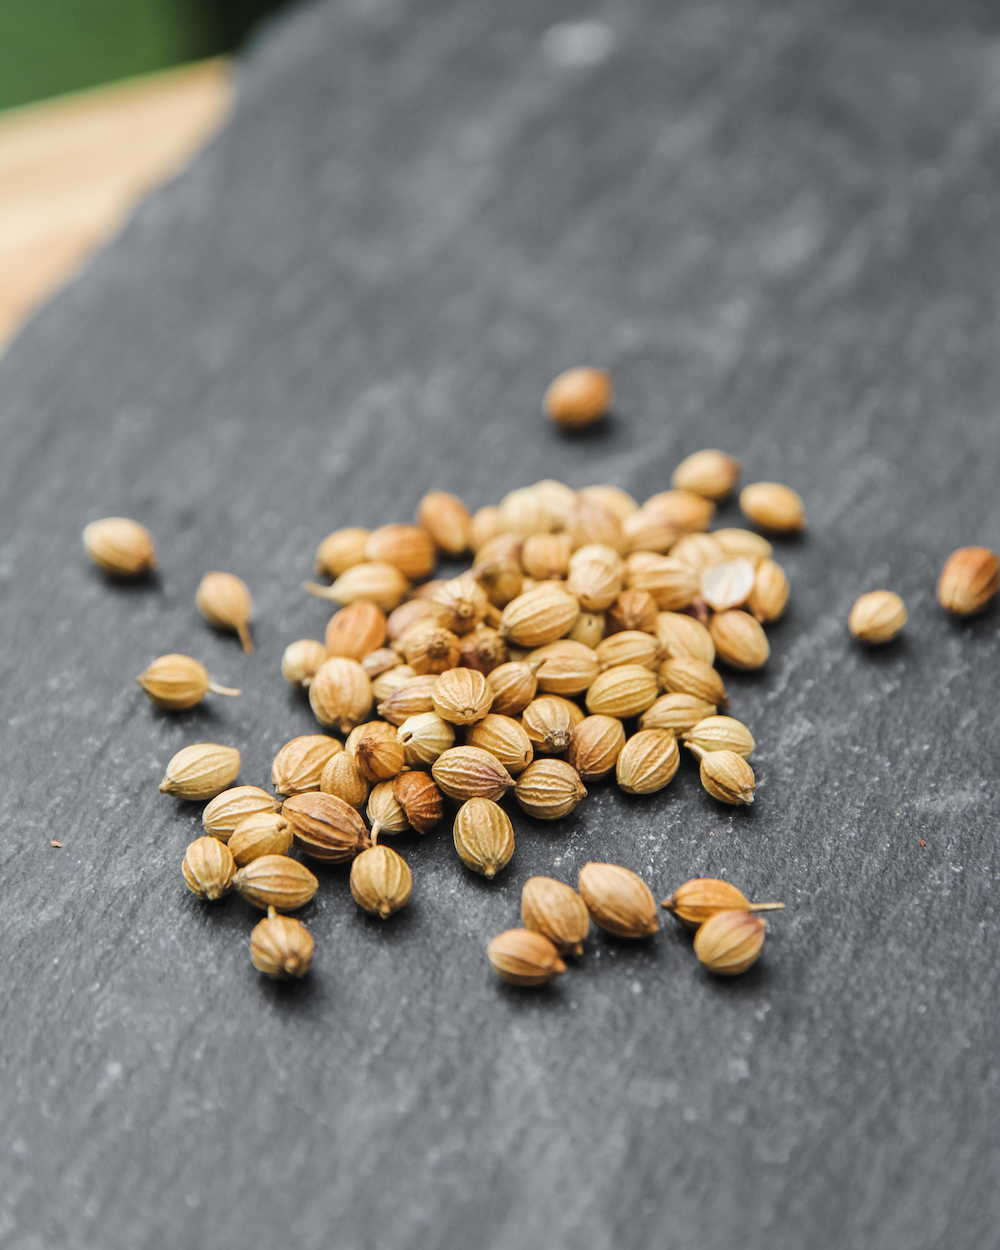 CORIANDER SEEDCoriander seeds bring a beautiful lemony citrus flavour to our traditional gin botanical base.